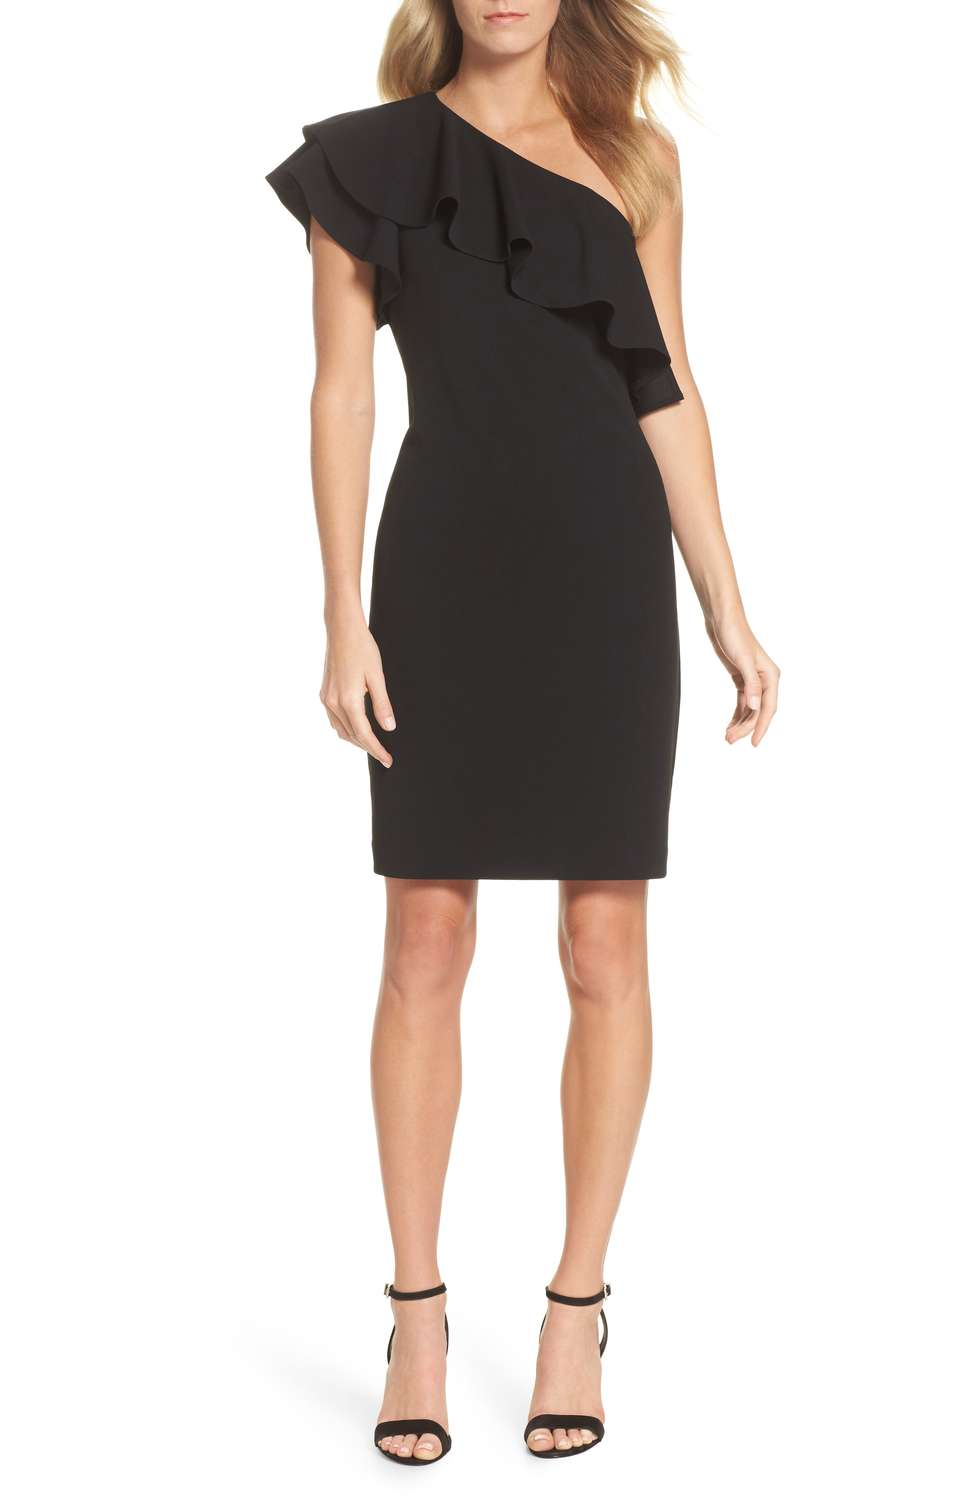 Nordstrom Ruffle Cocktail Dress